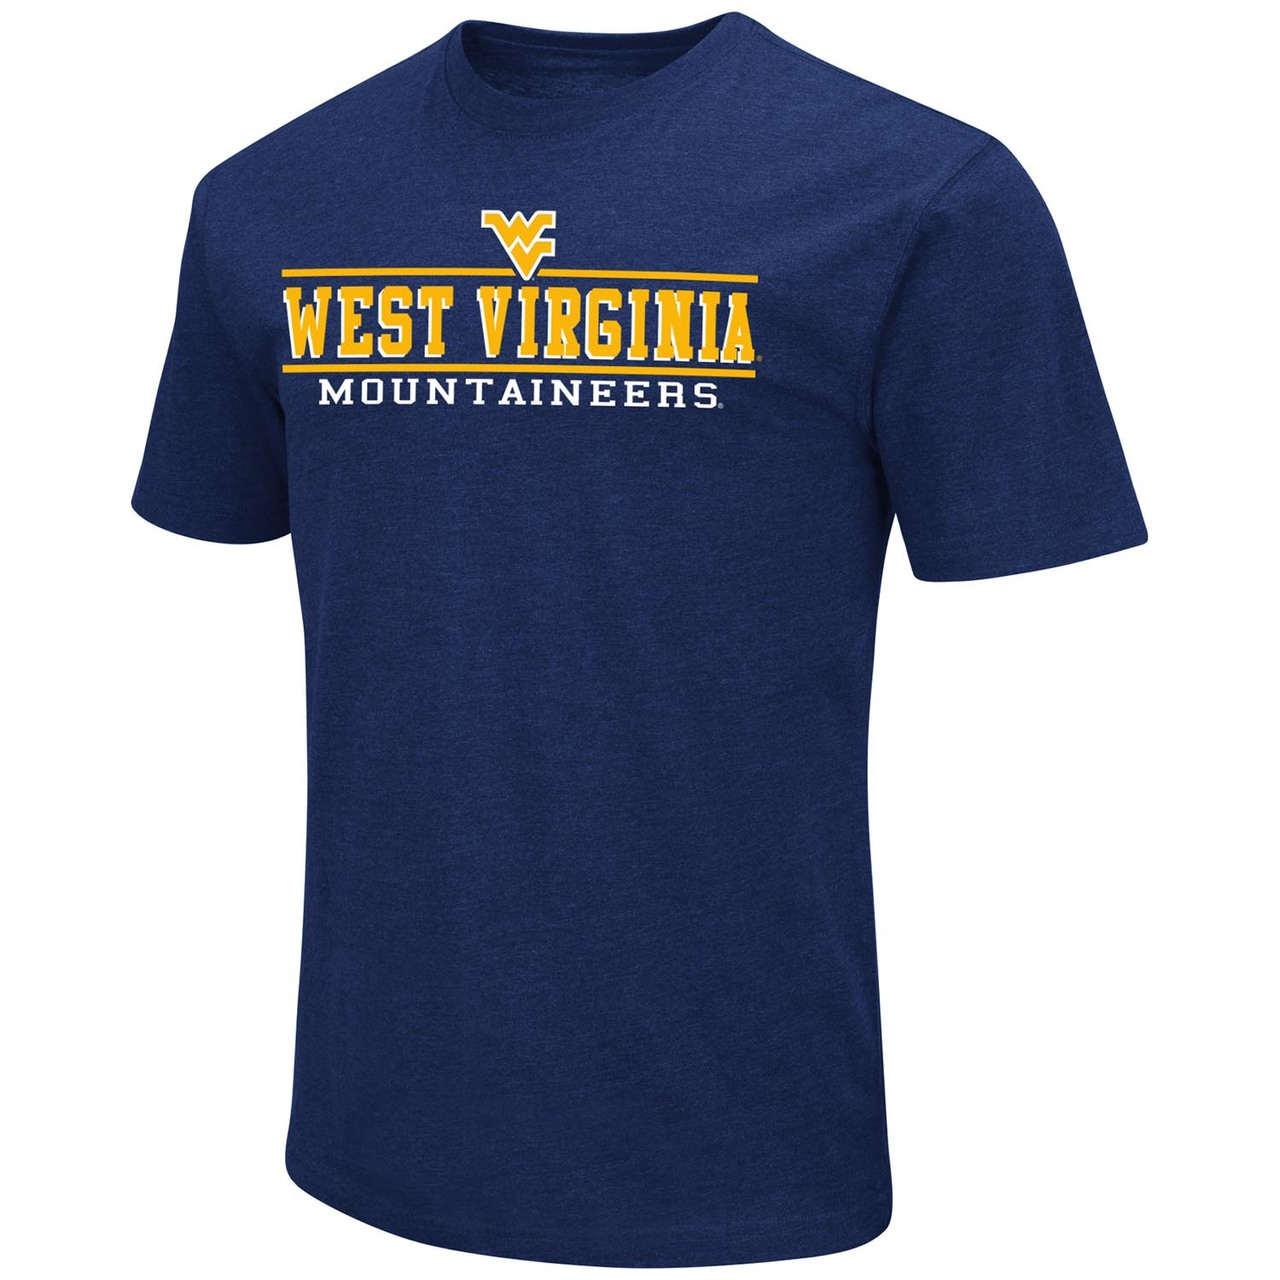 West Virginia Mountaineers Adult Soft Vintage Tailgate T-Shirt  - Navy